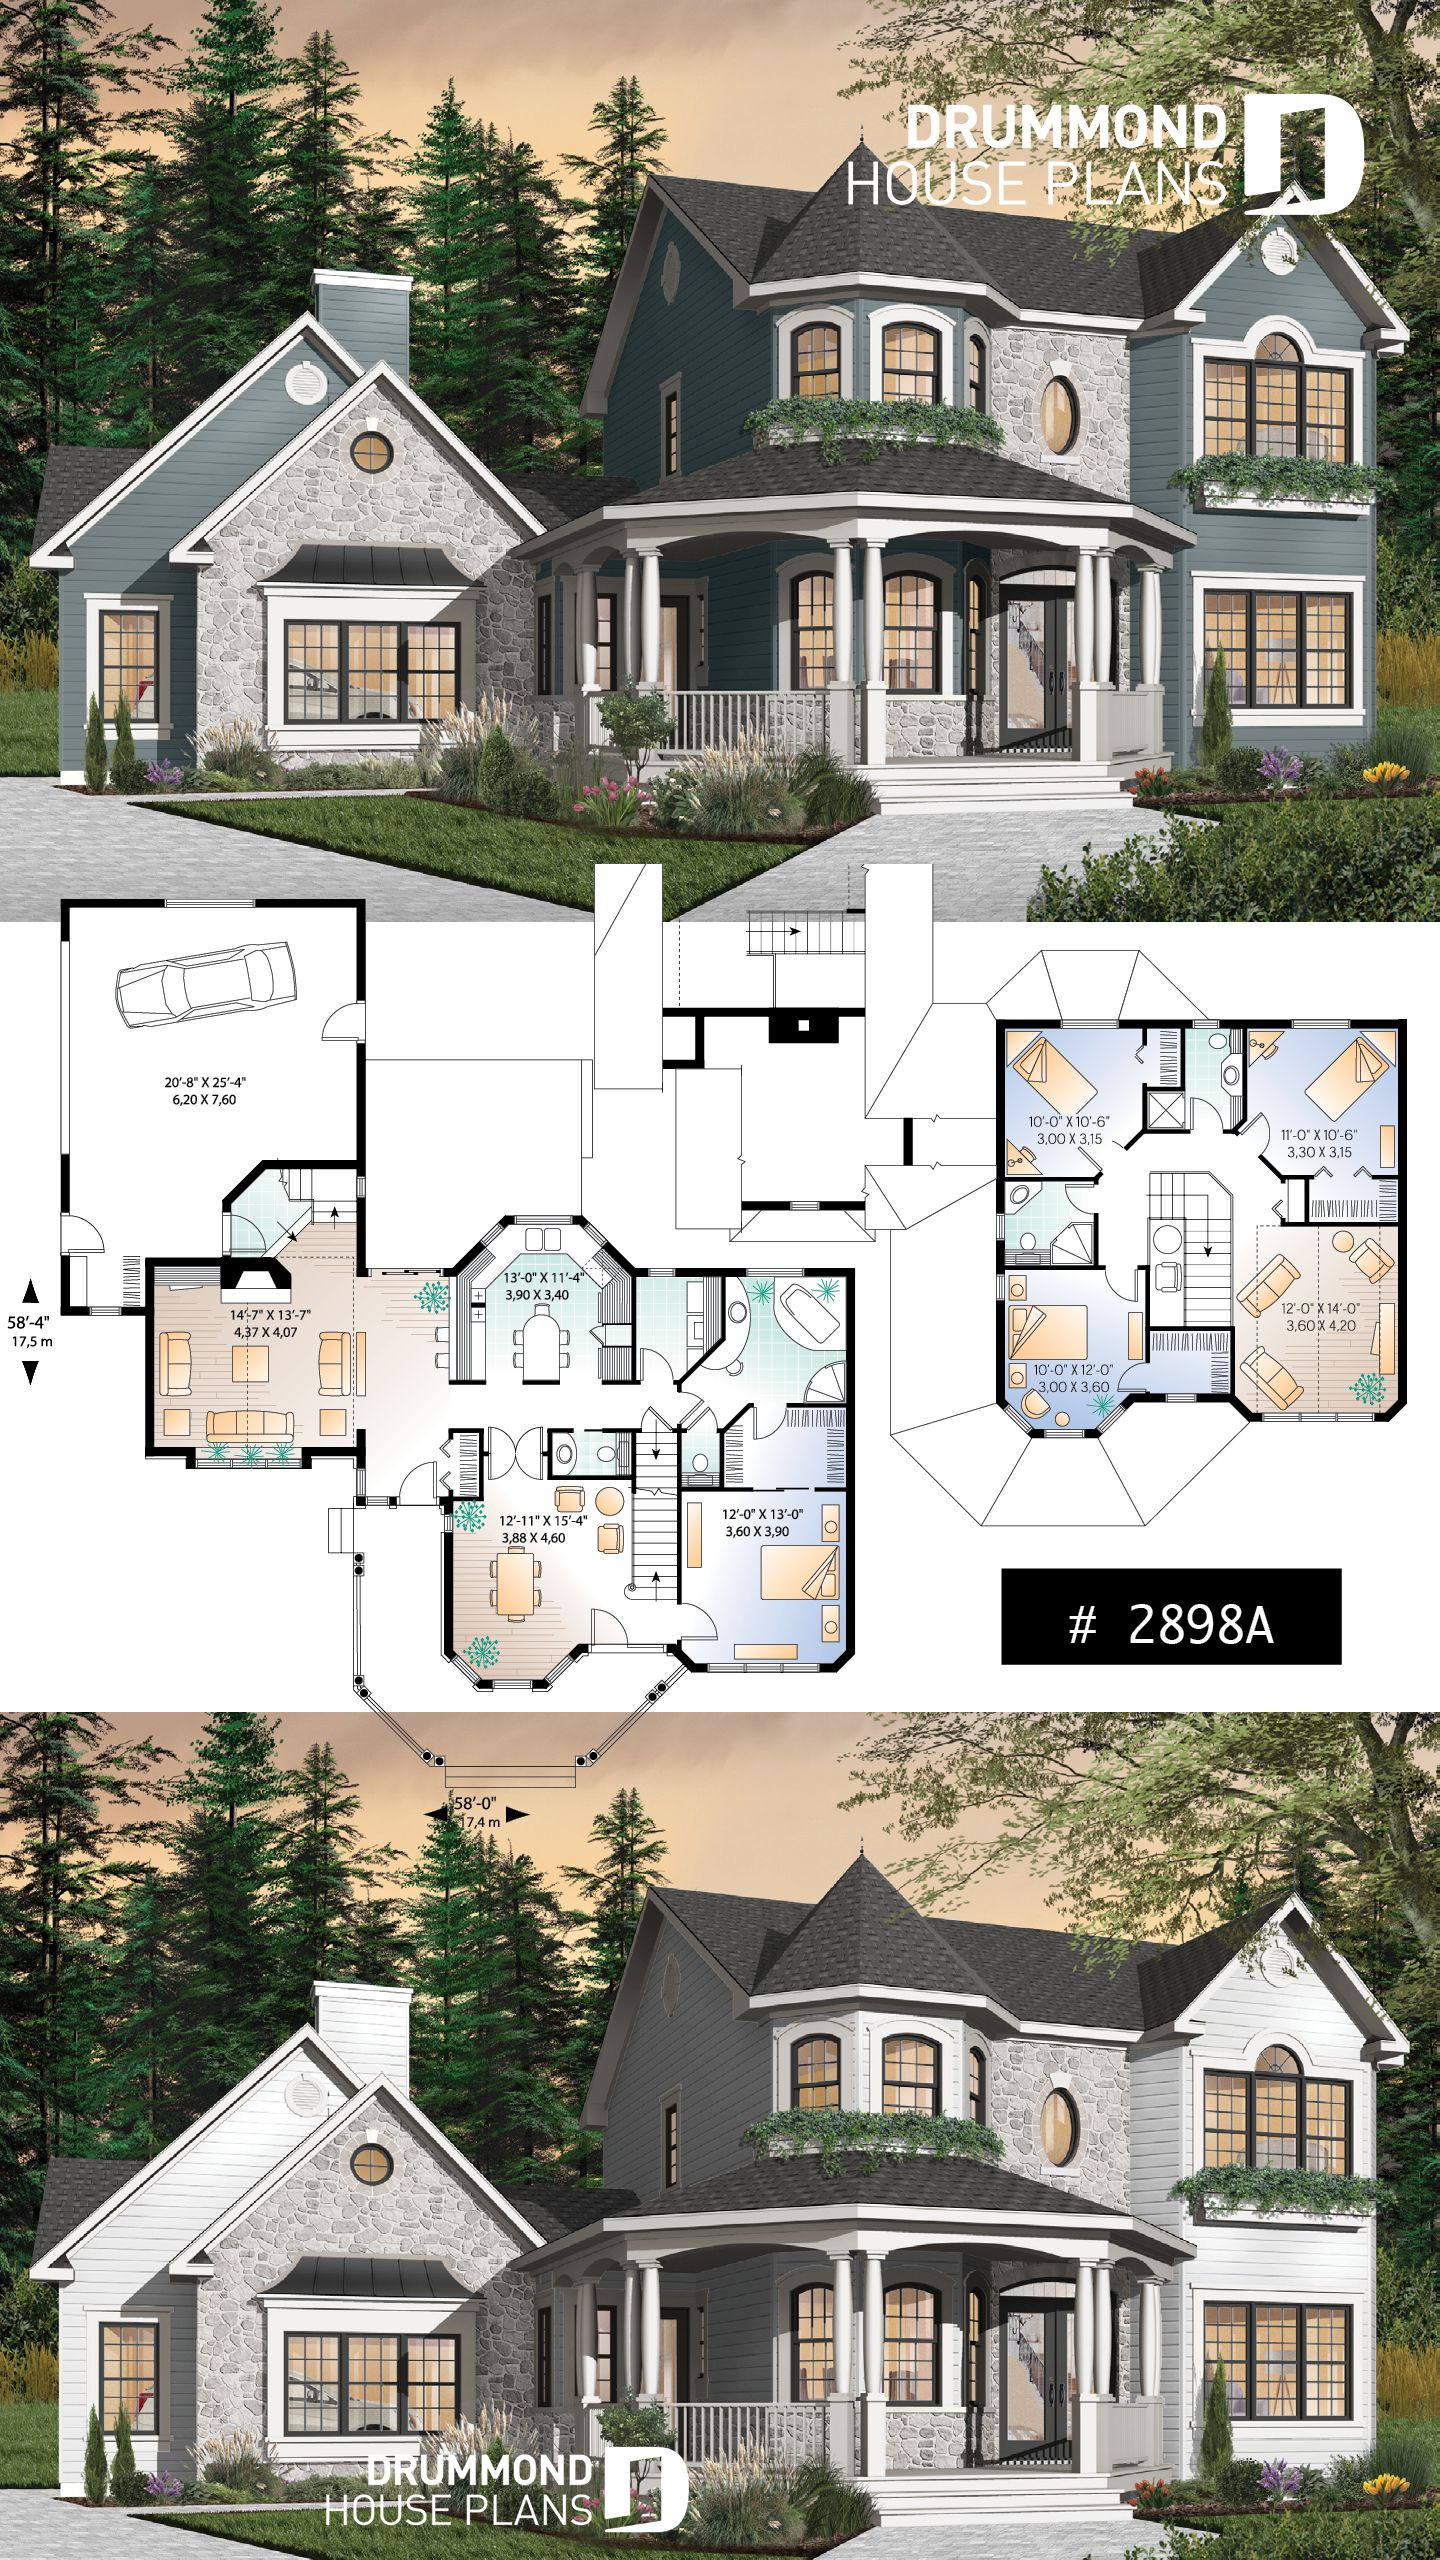 Photo of Victorian house plan 4 bedroom